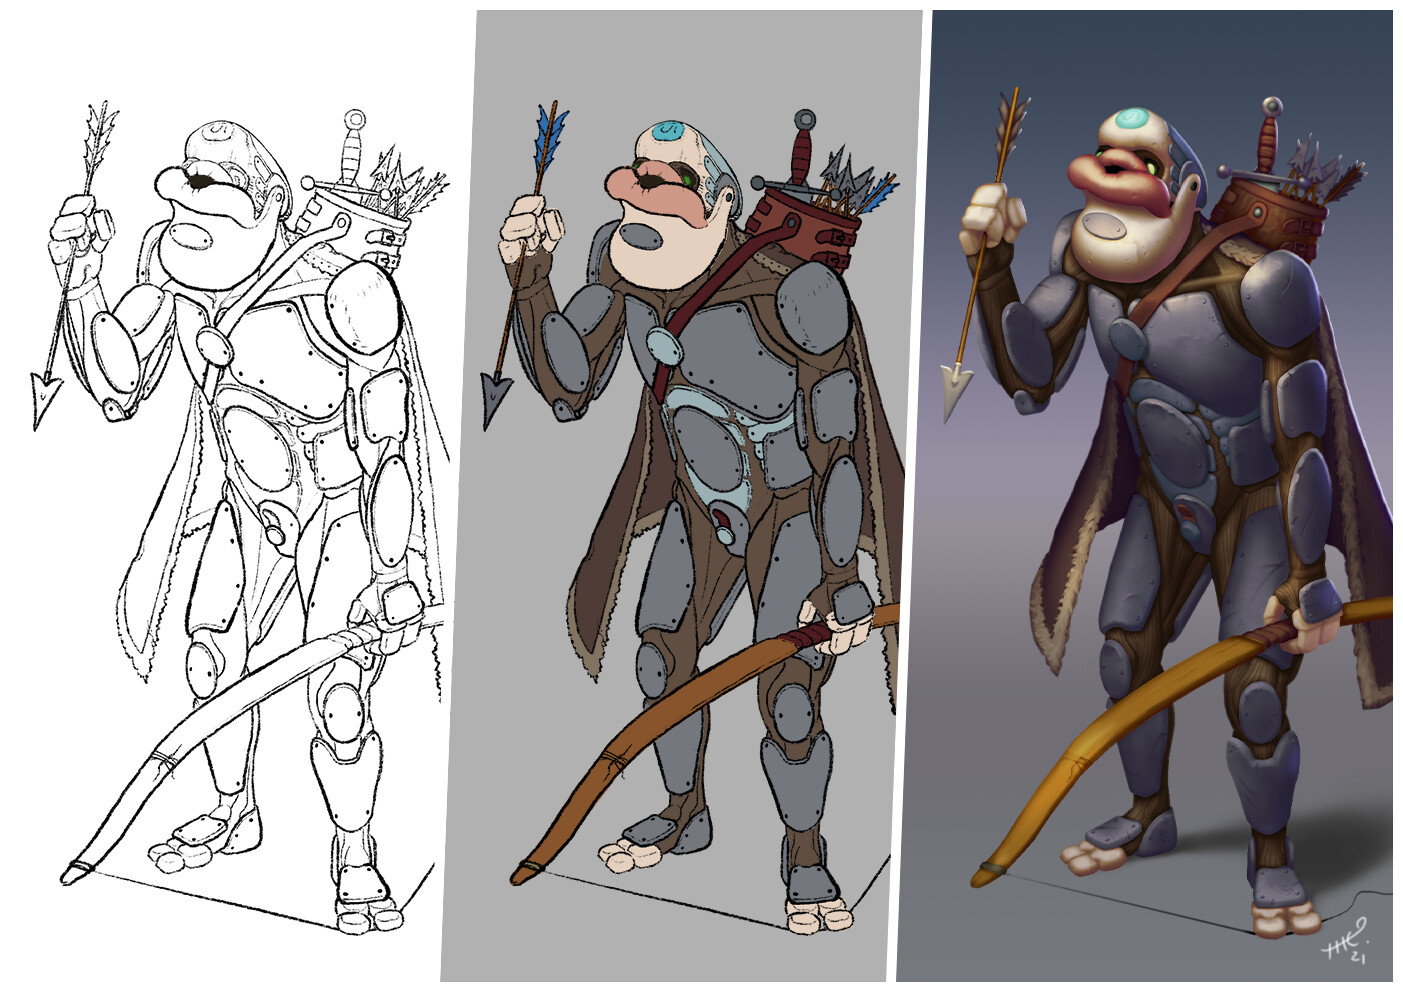 Line art first then flat color, then a lot shading, lighting and polish